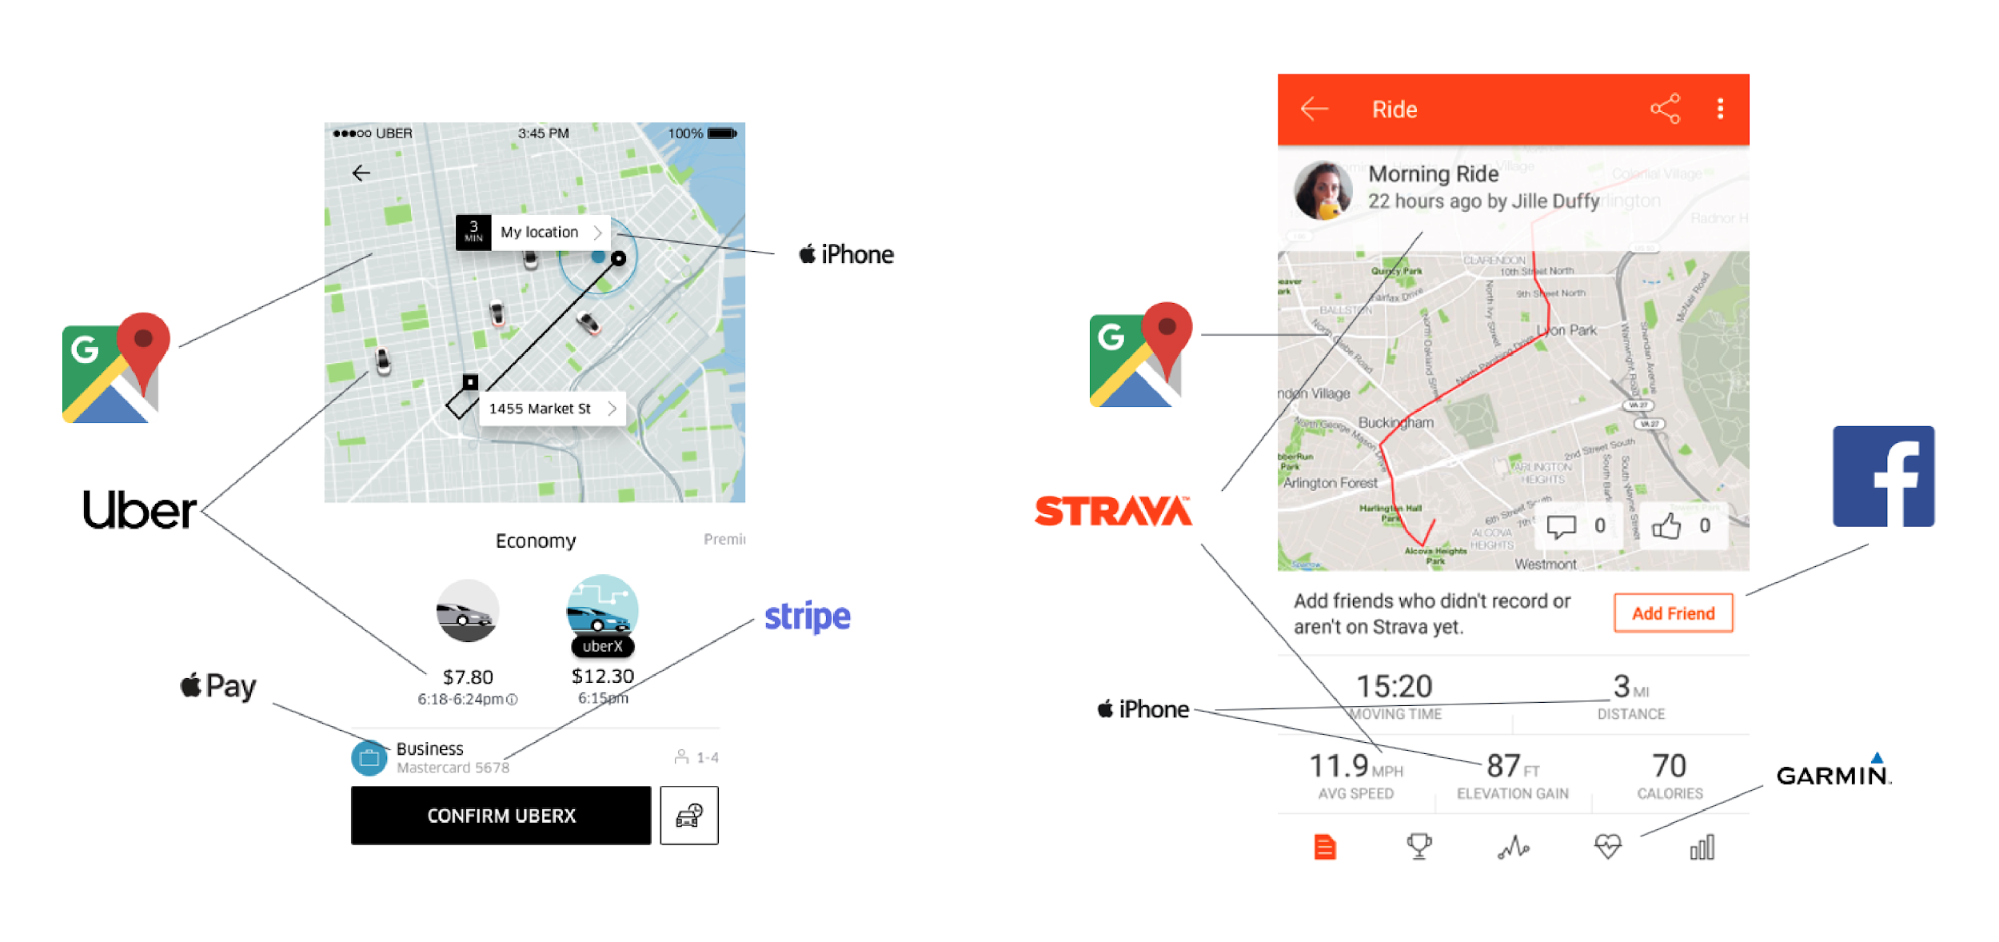 Uber and Strava are composites of a wide range of APIs